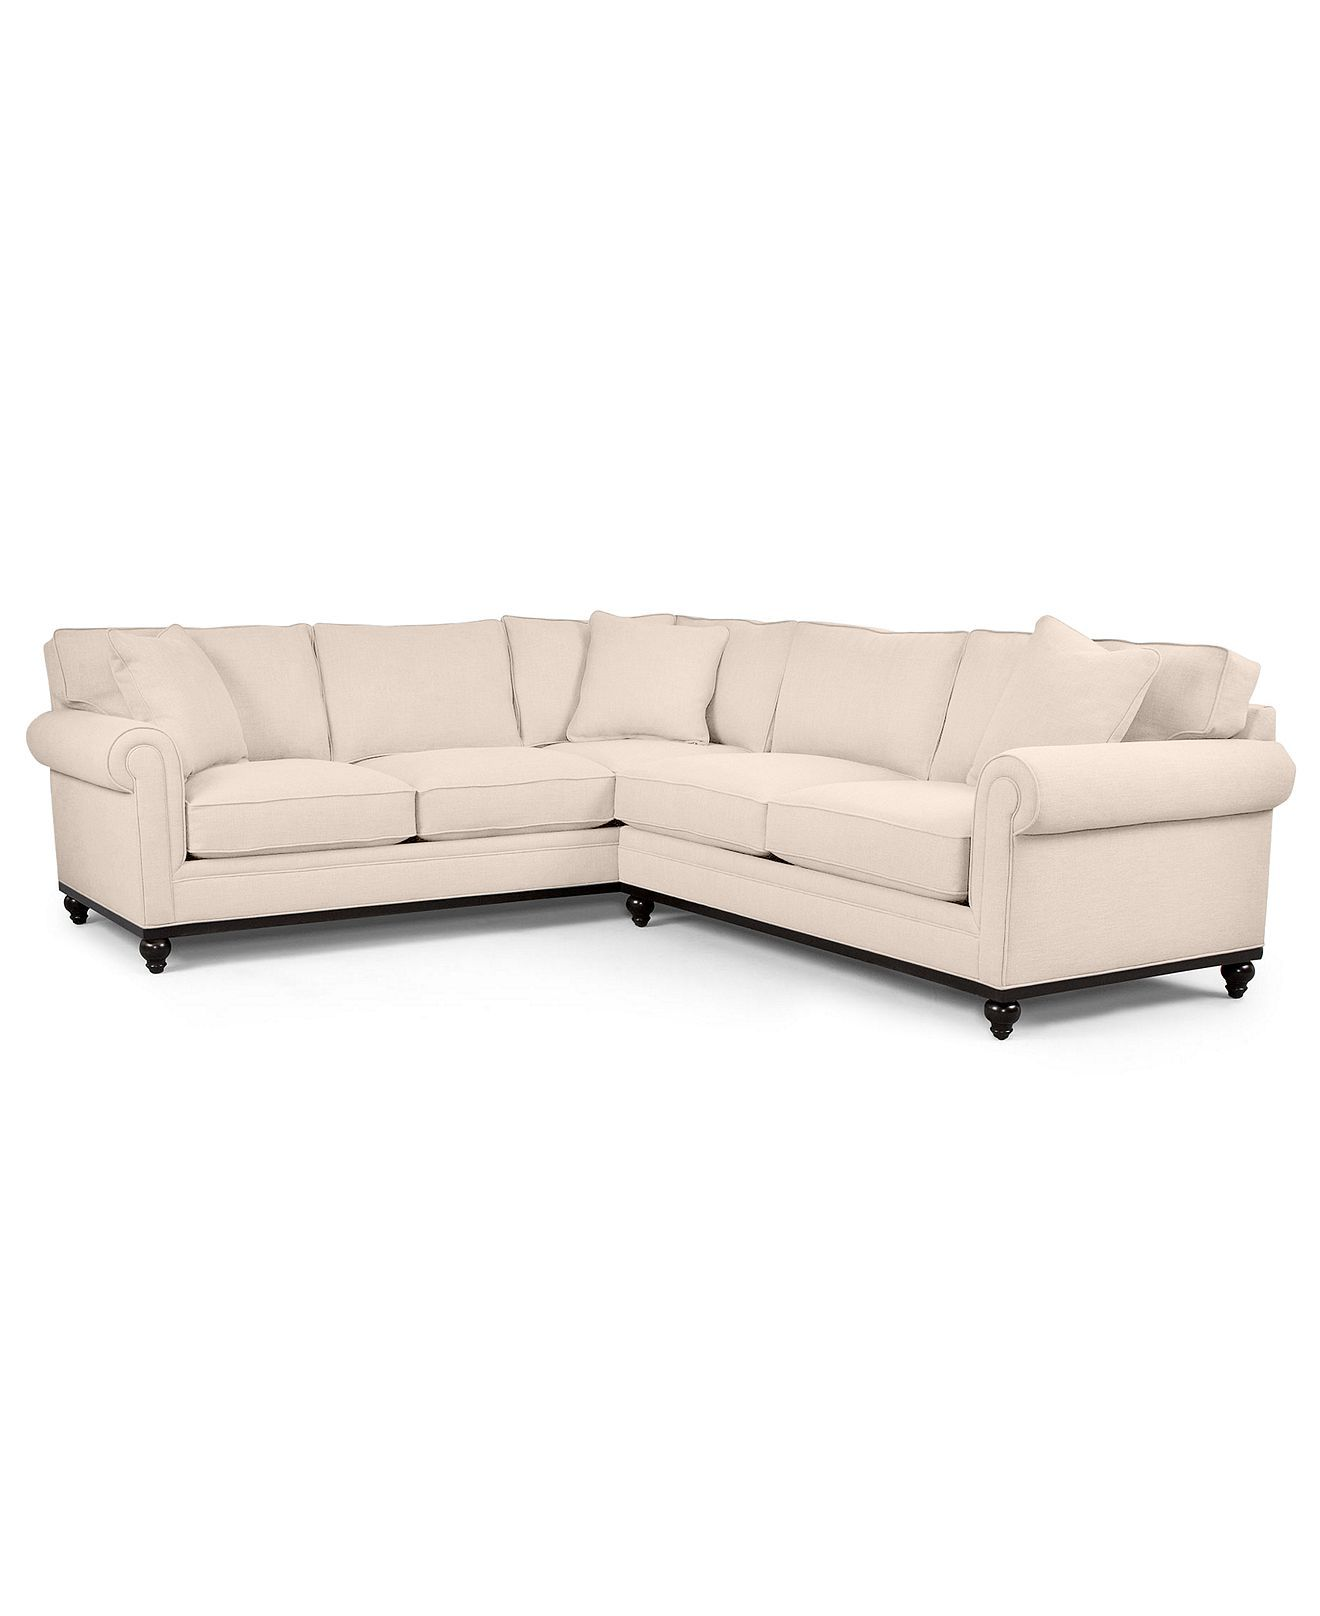 Martha Stewart Fabric Sectional Sofa Club 3 Piece 138W x 100D x